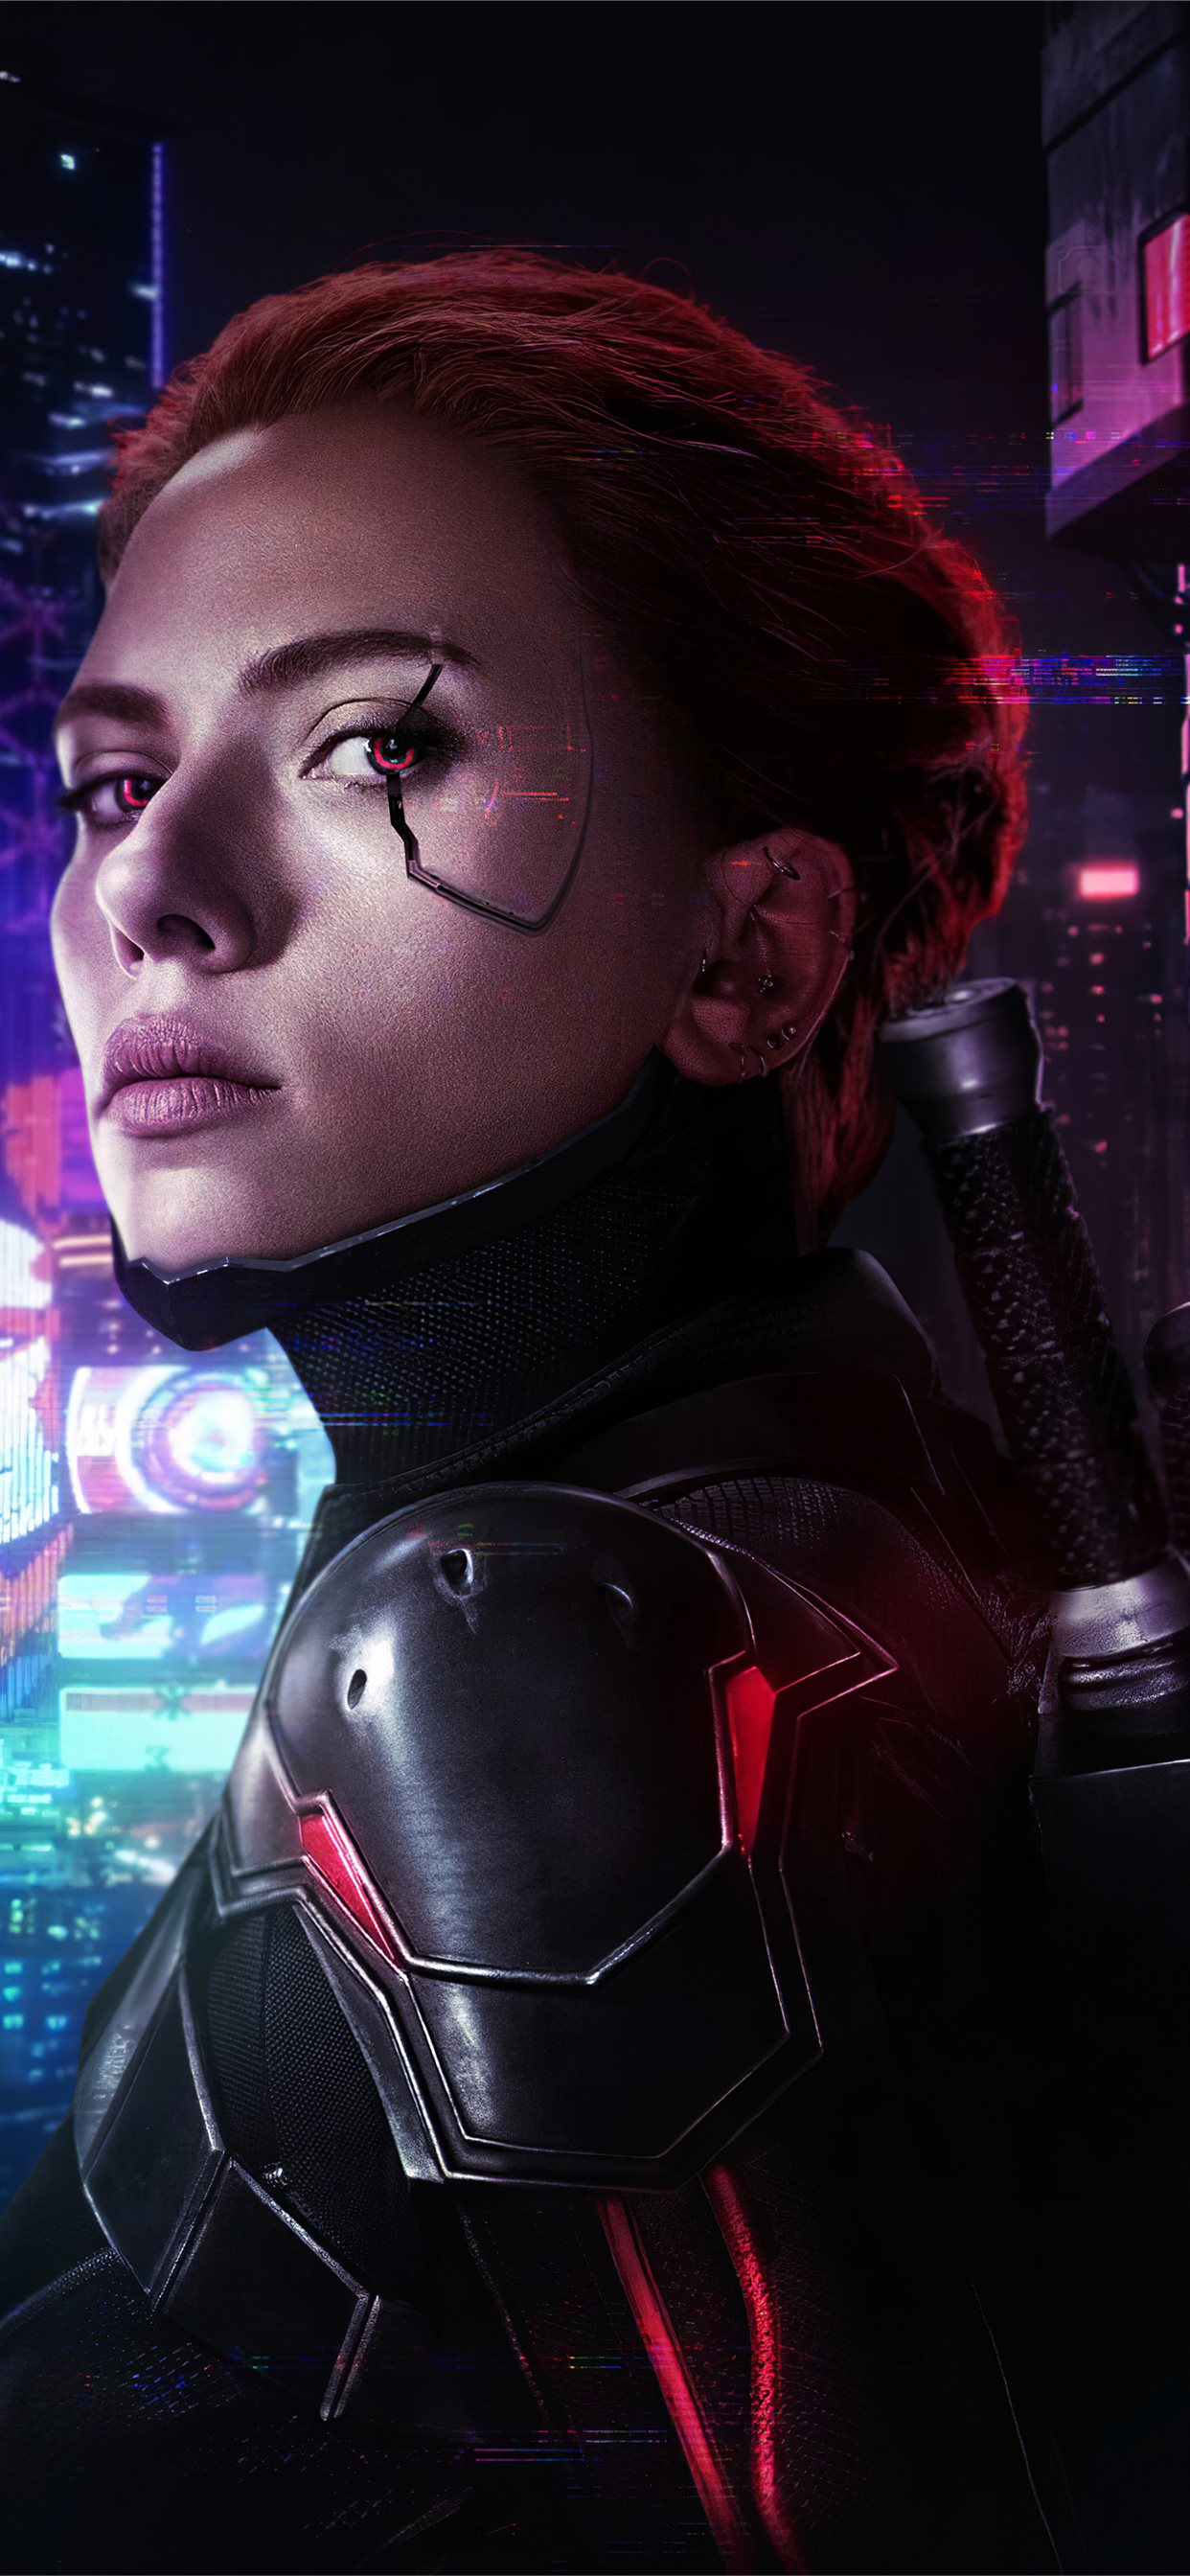 Cyberpunk 2077 X Avengers Black Widow Iphone X Wallpapers Free Download